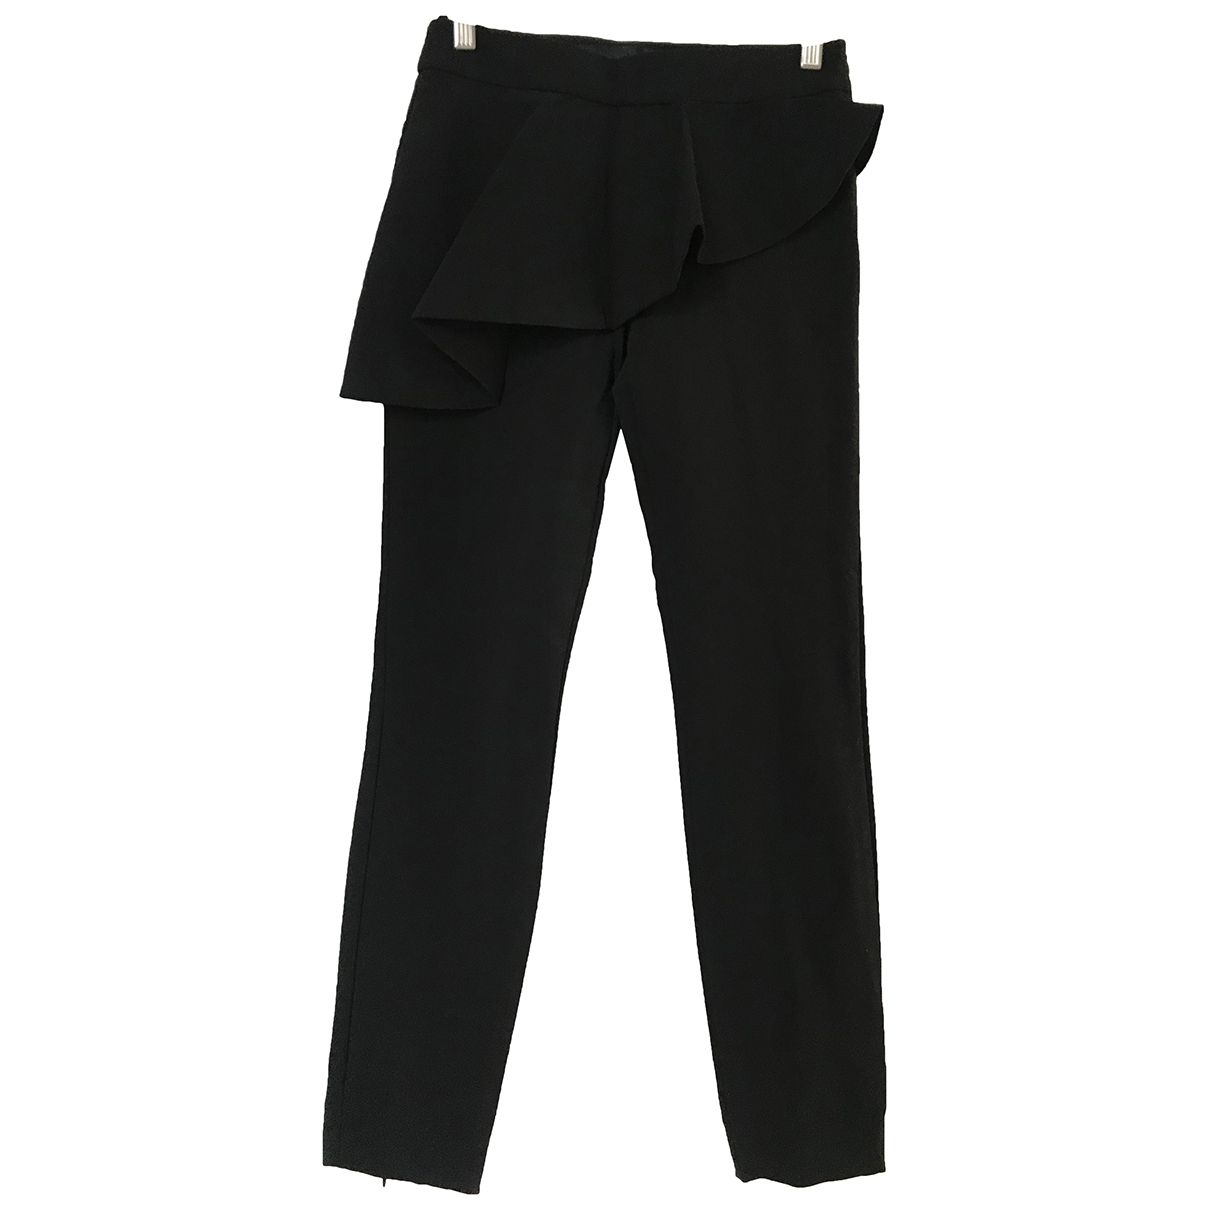 Zara \N Black Trousers for Women XS International